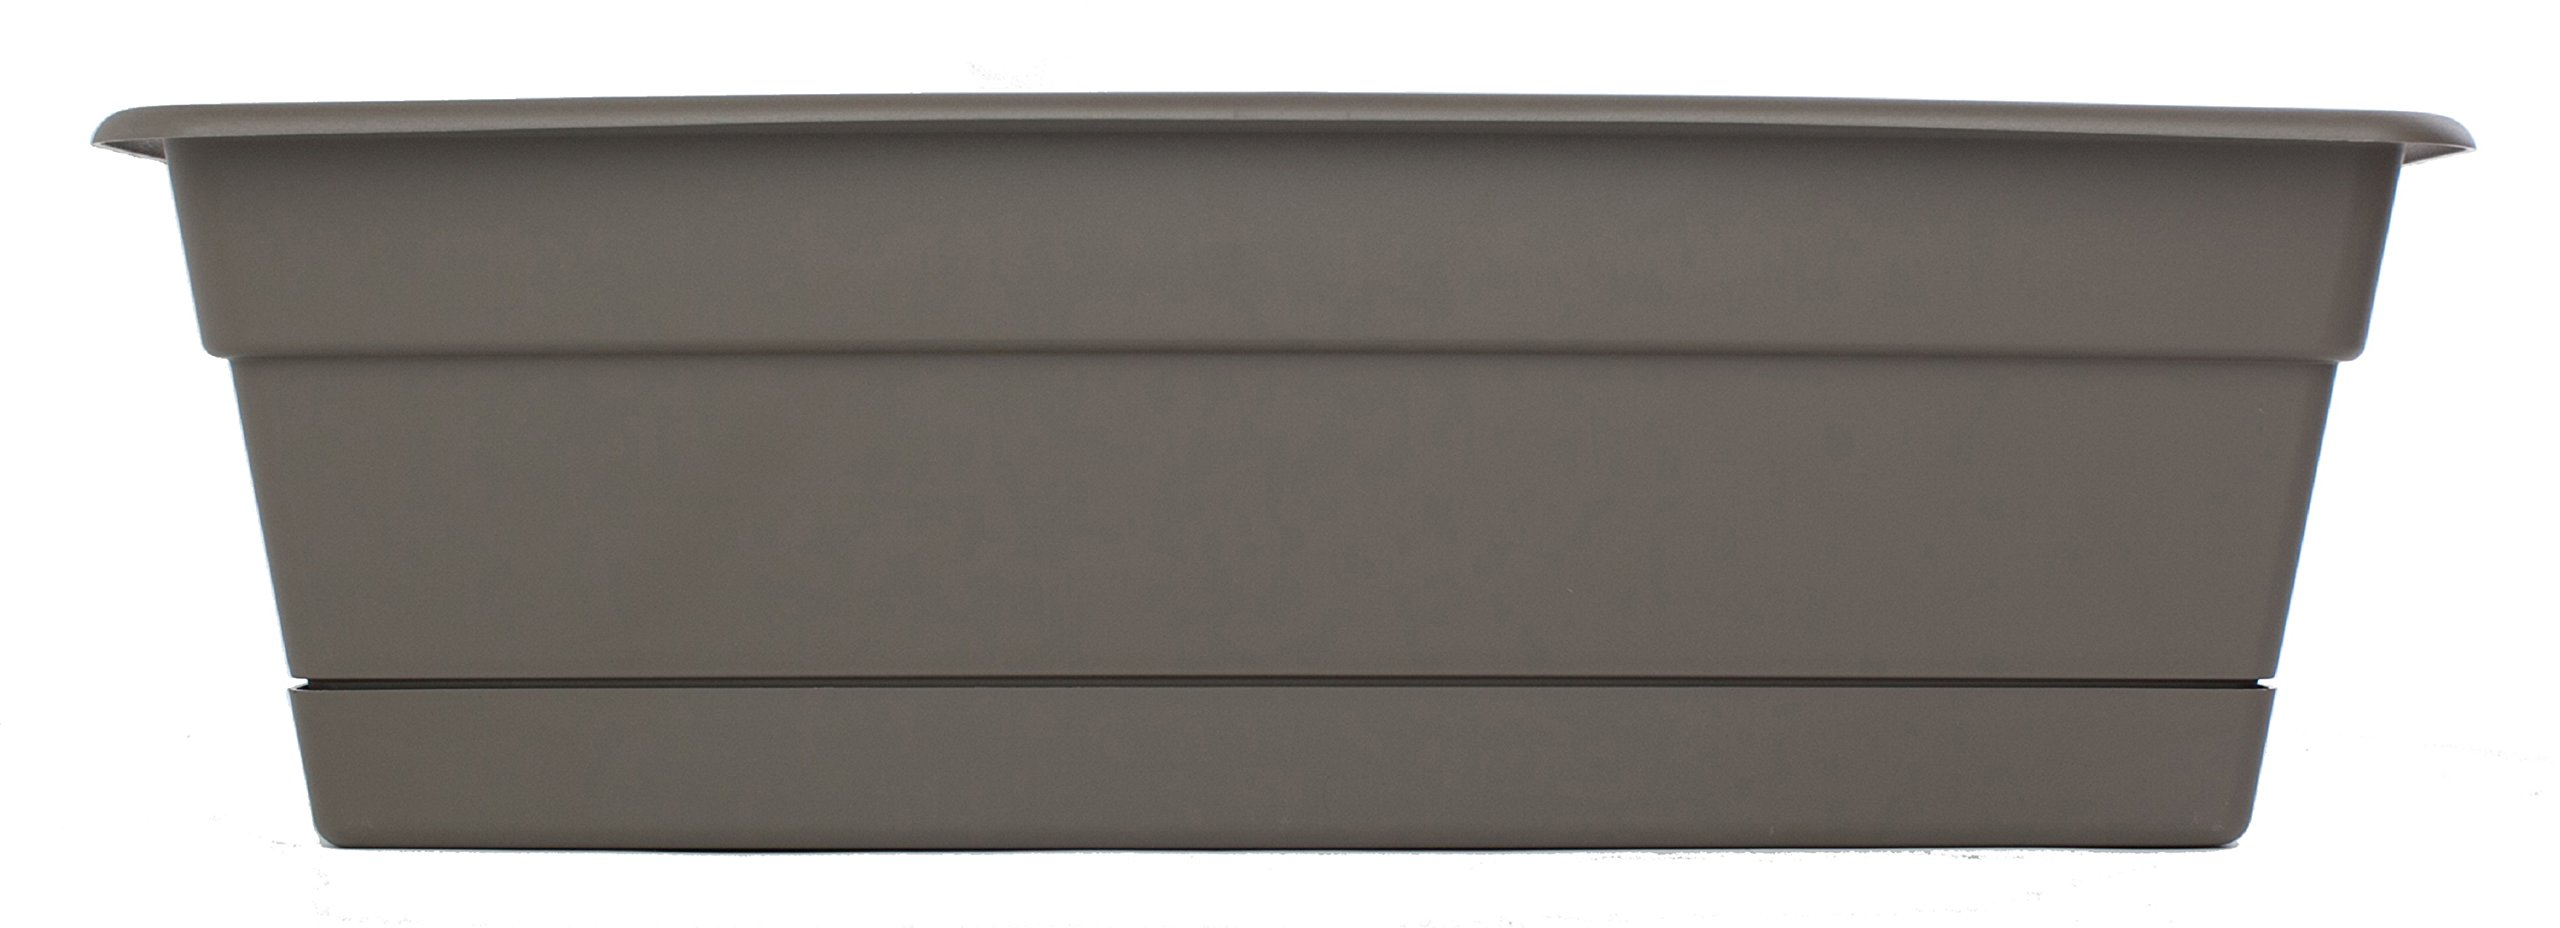 Bloem DCBT36-60 Dura Cotta Plant Window Box, 36-Inch, Peppercorn by Bloem